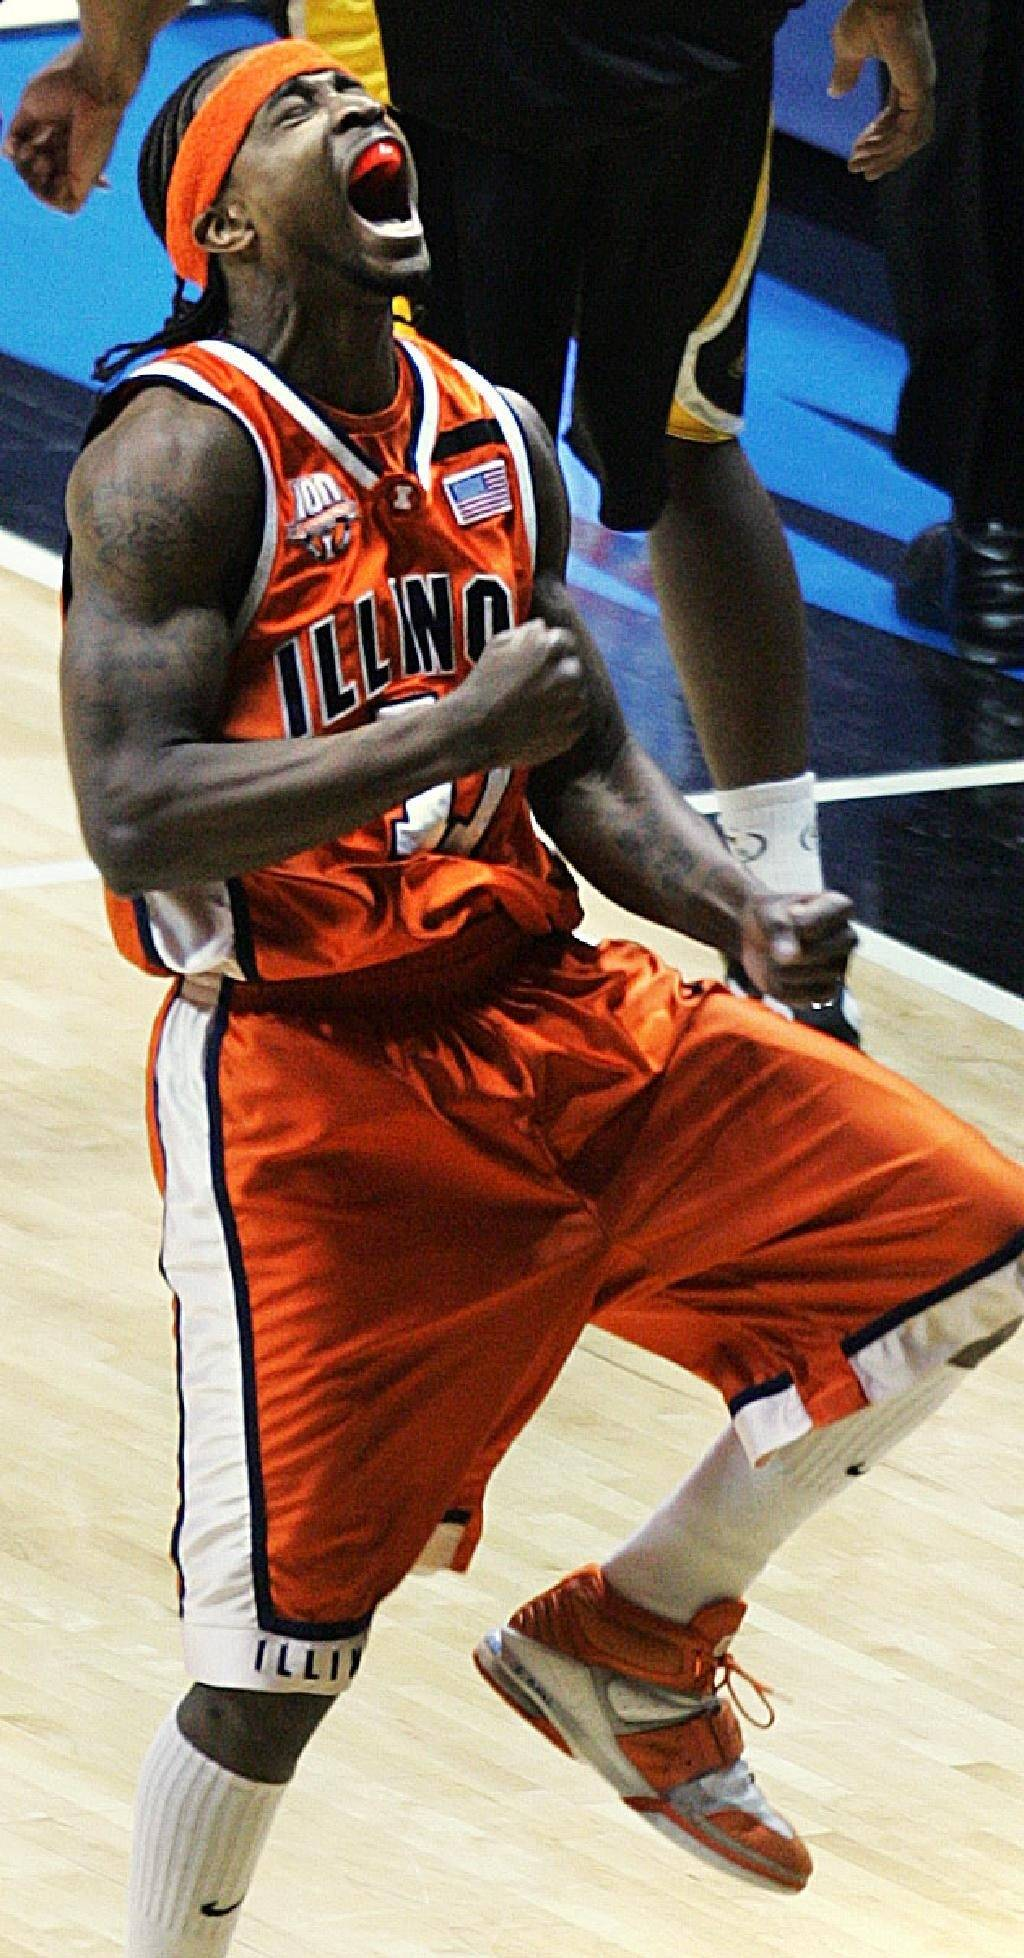 Illinois' Dee Brown howls with delight after draining one of his five three pointers against Wisconsin-Milwaukee at the Allstate Arena in the third round of the NCAA Tournament.